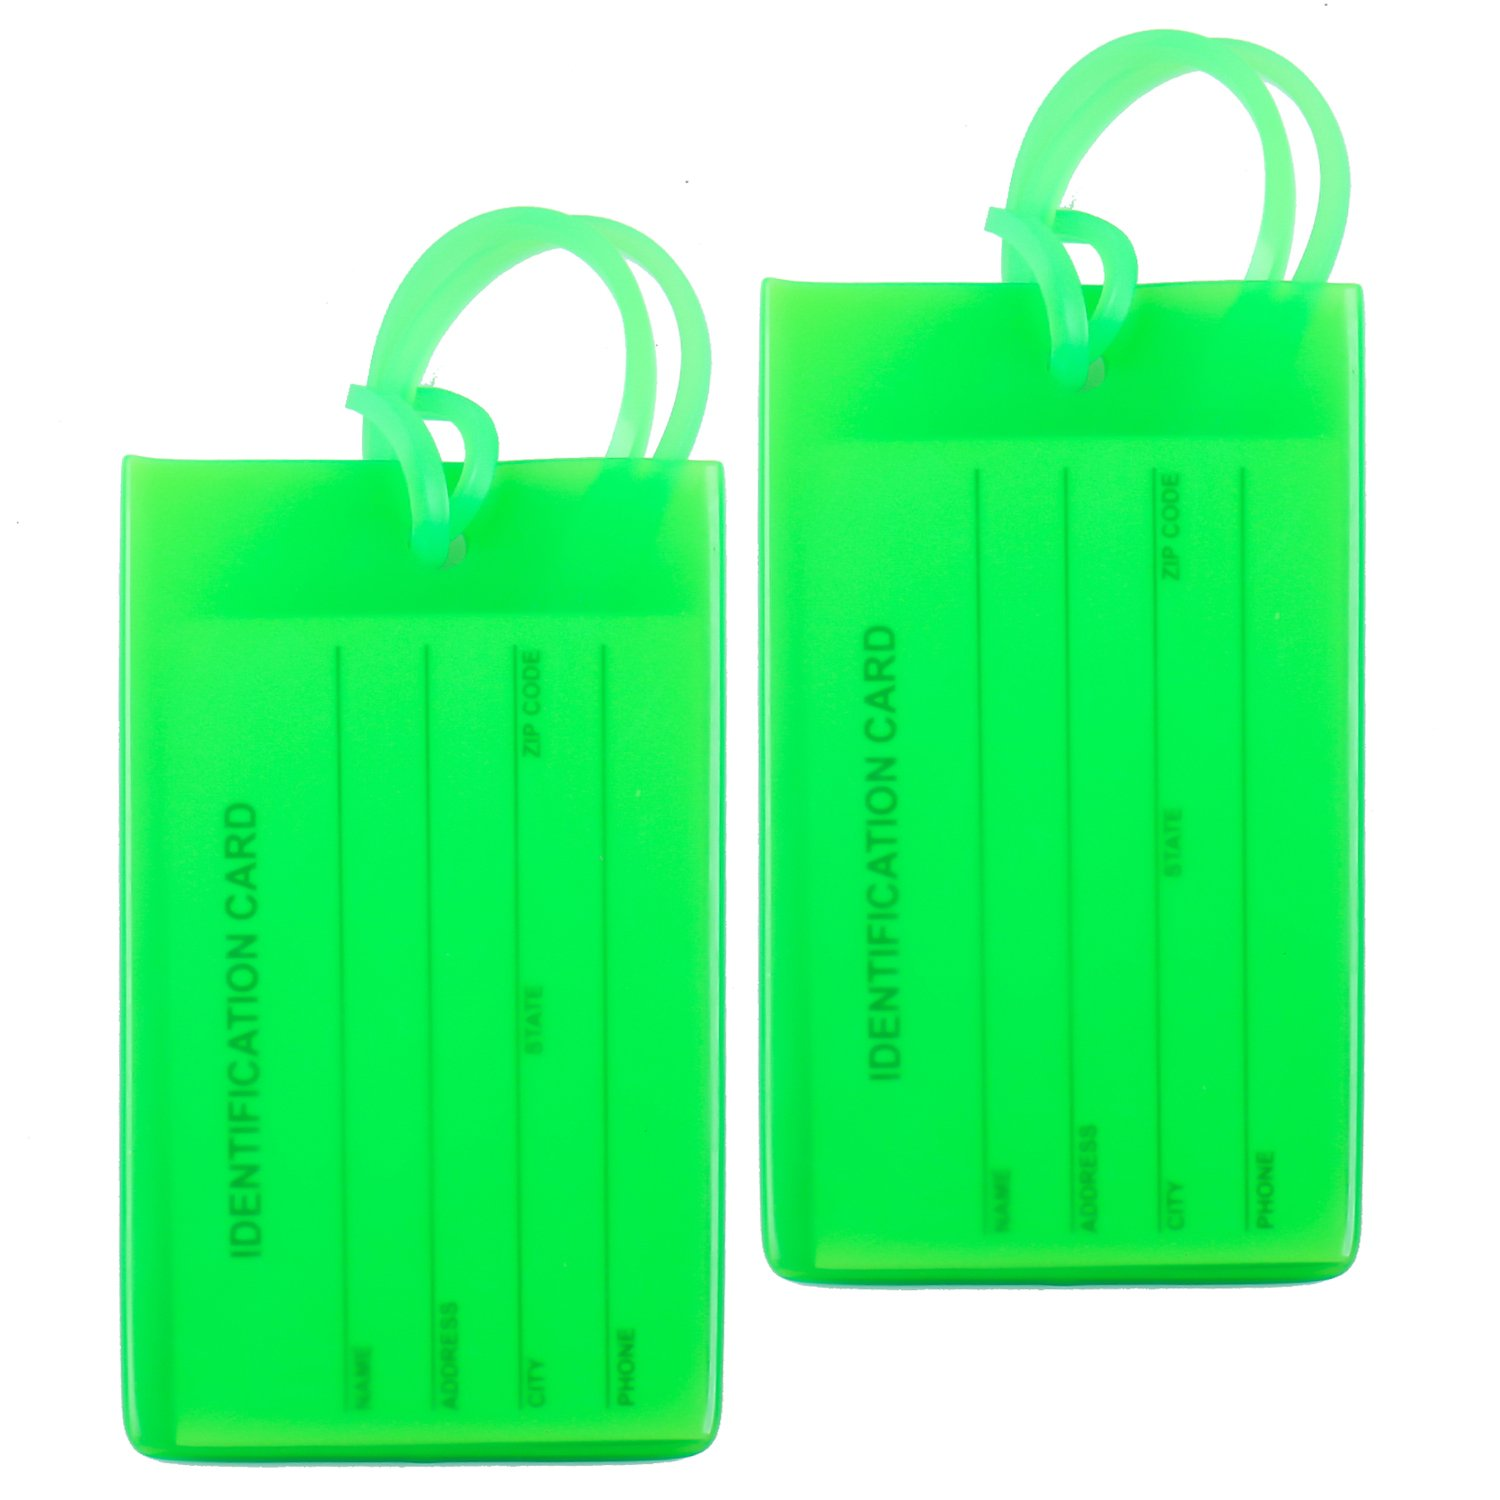 2 Packs Colorful Flexible Travel Luggage Tags for Baggage Bag / Suitcases - Name ID Labels Set for Travel - Black